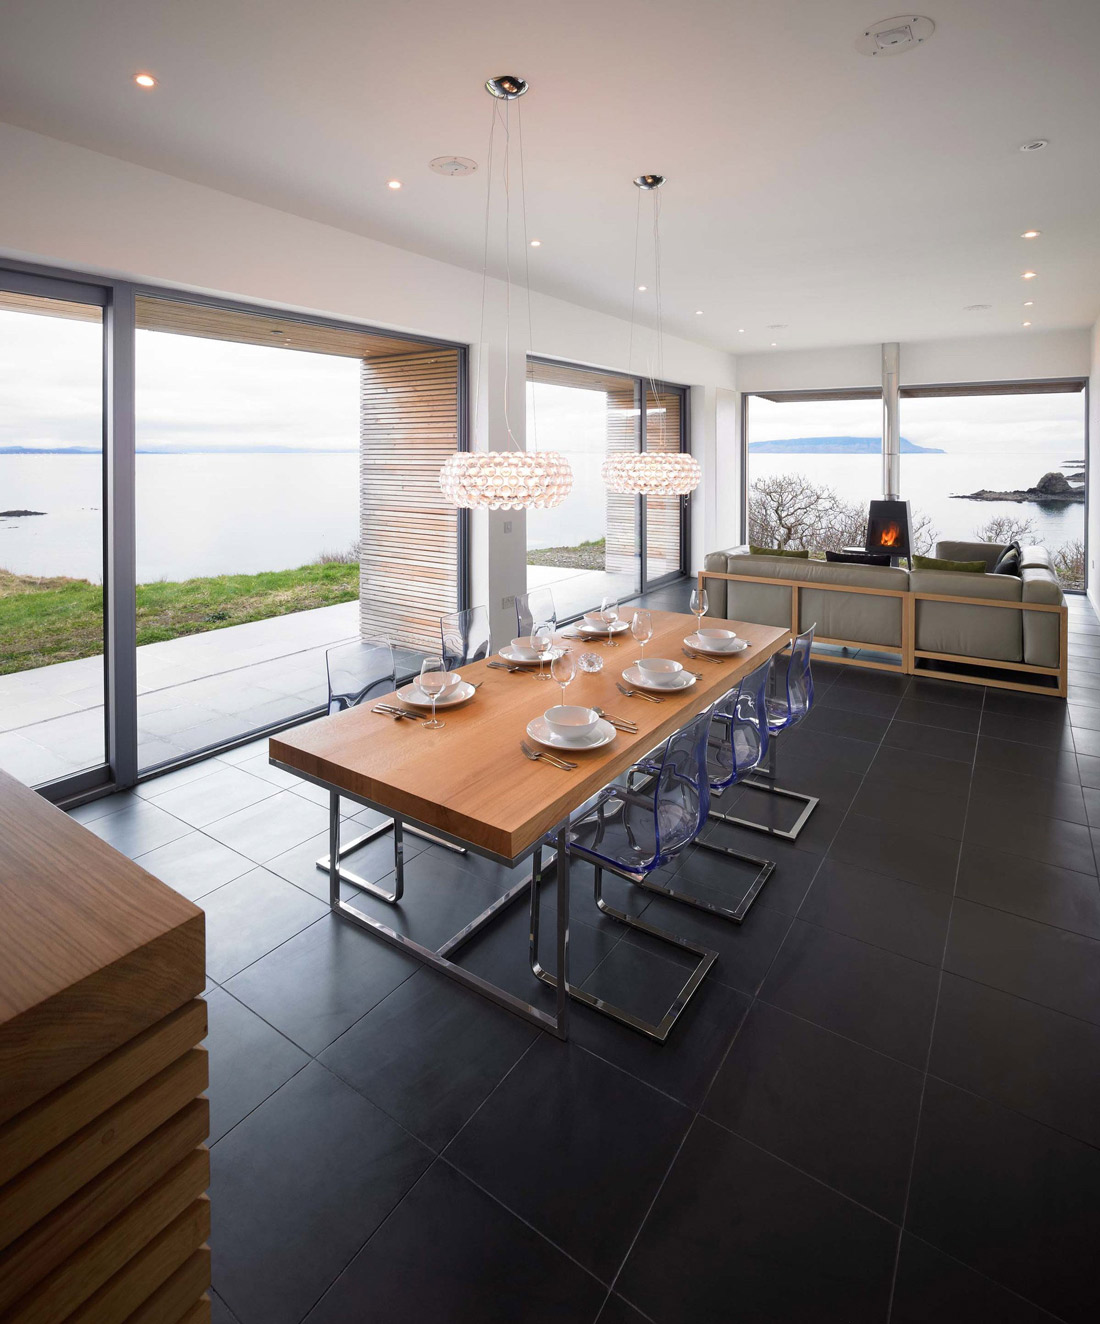 Wooden, Metal, Dining Table, Lighting, Contemporary Home on the Isle of Skye, Scotland